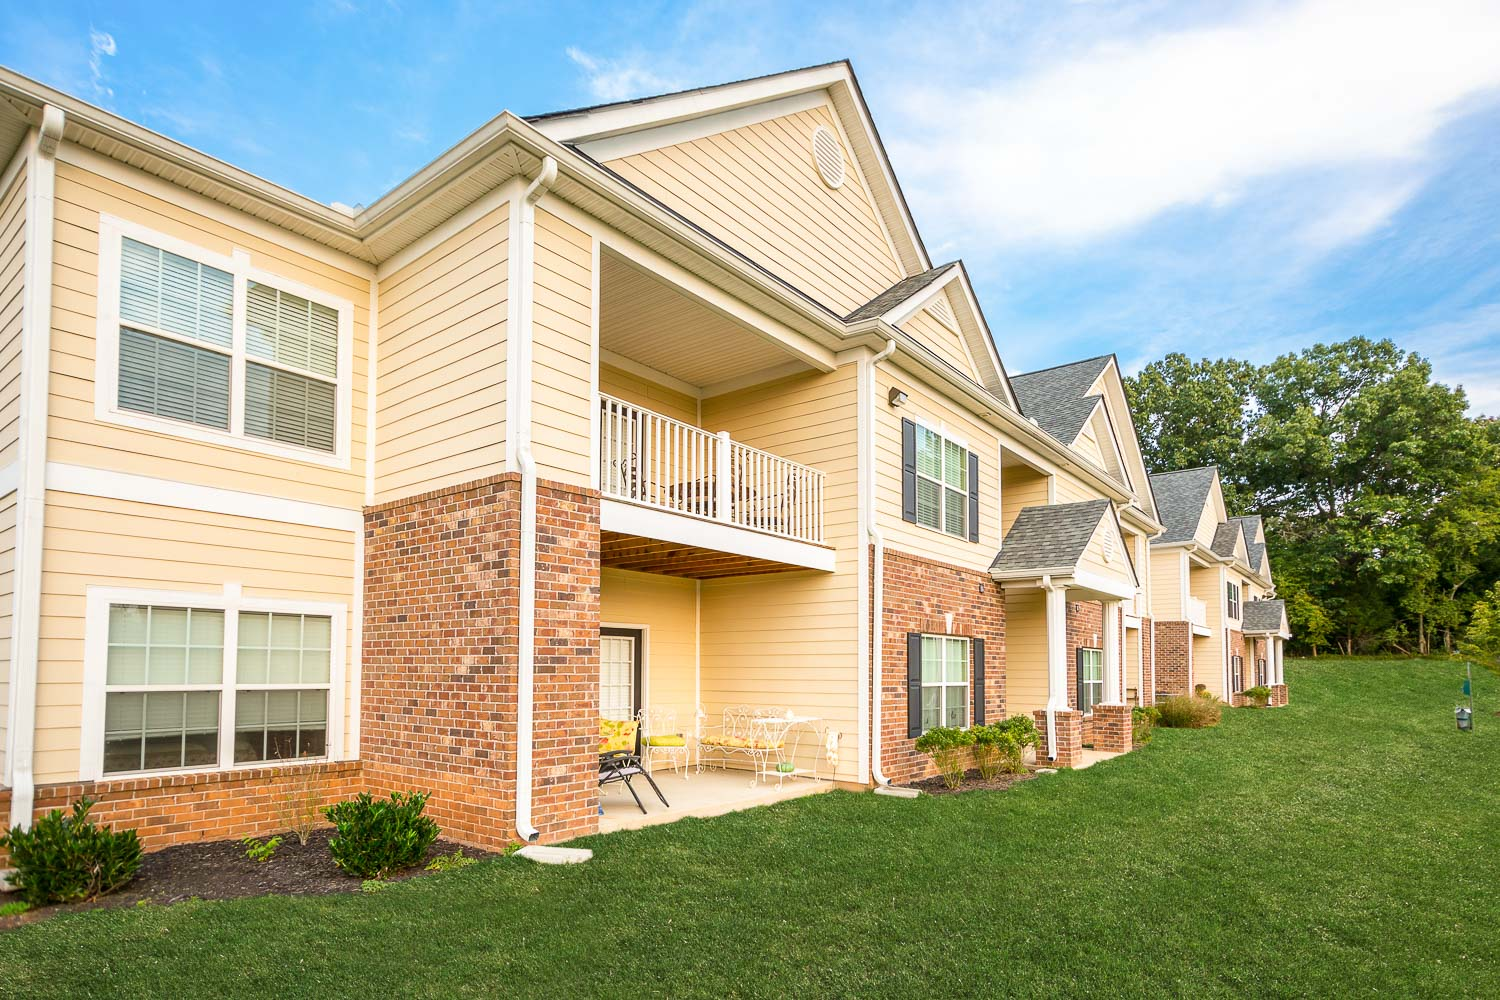 Cumberland trace village apartments in bowling green ky for One bedroom apartments in bowling green ky